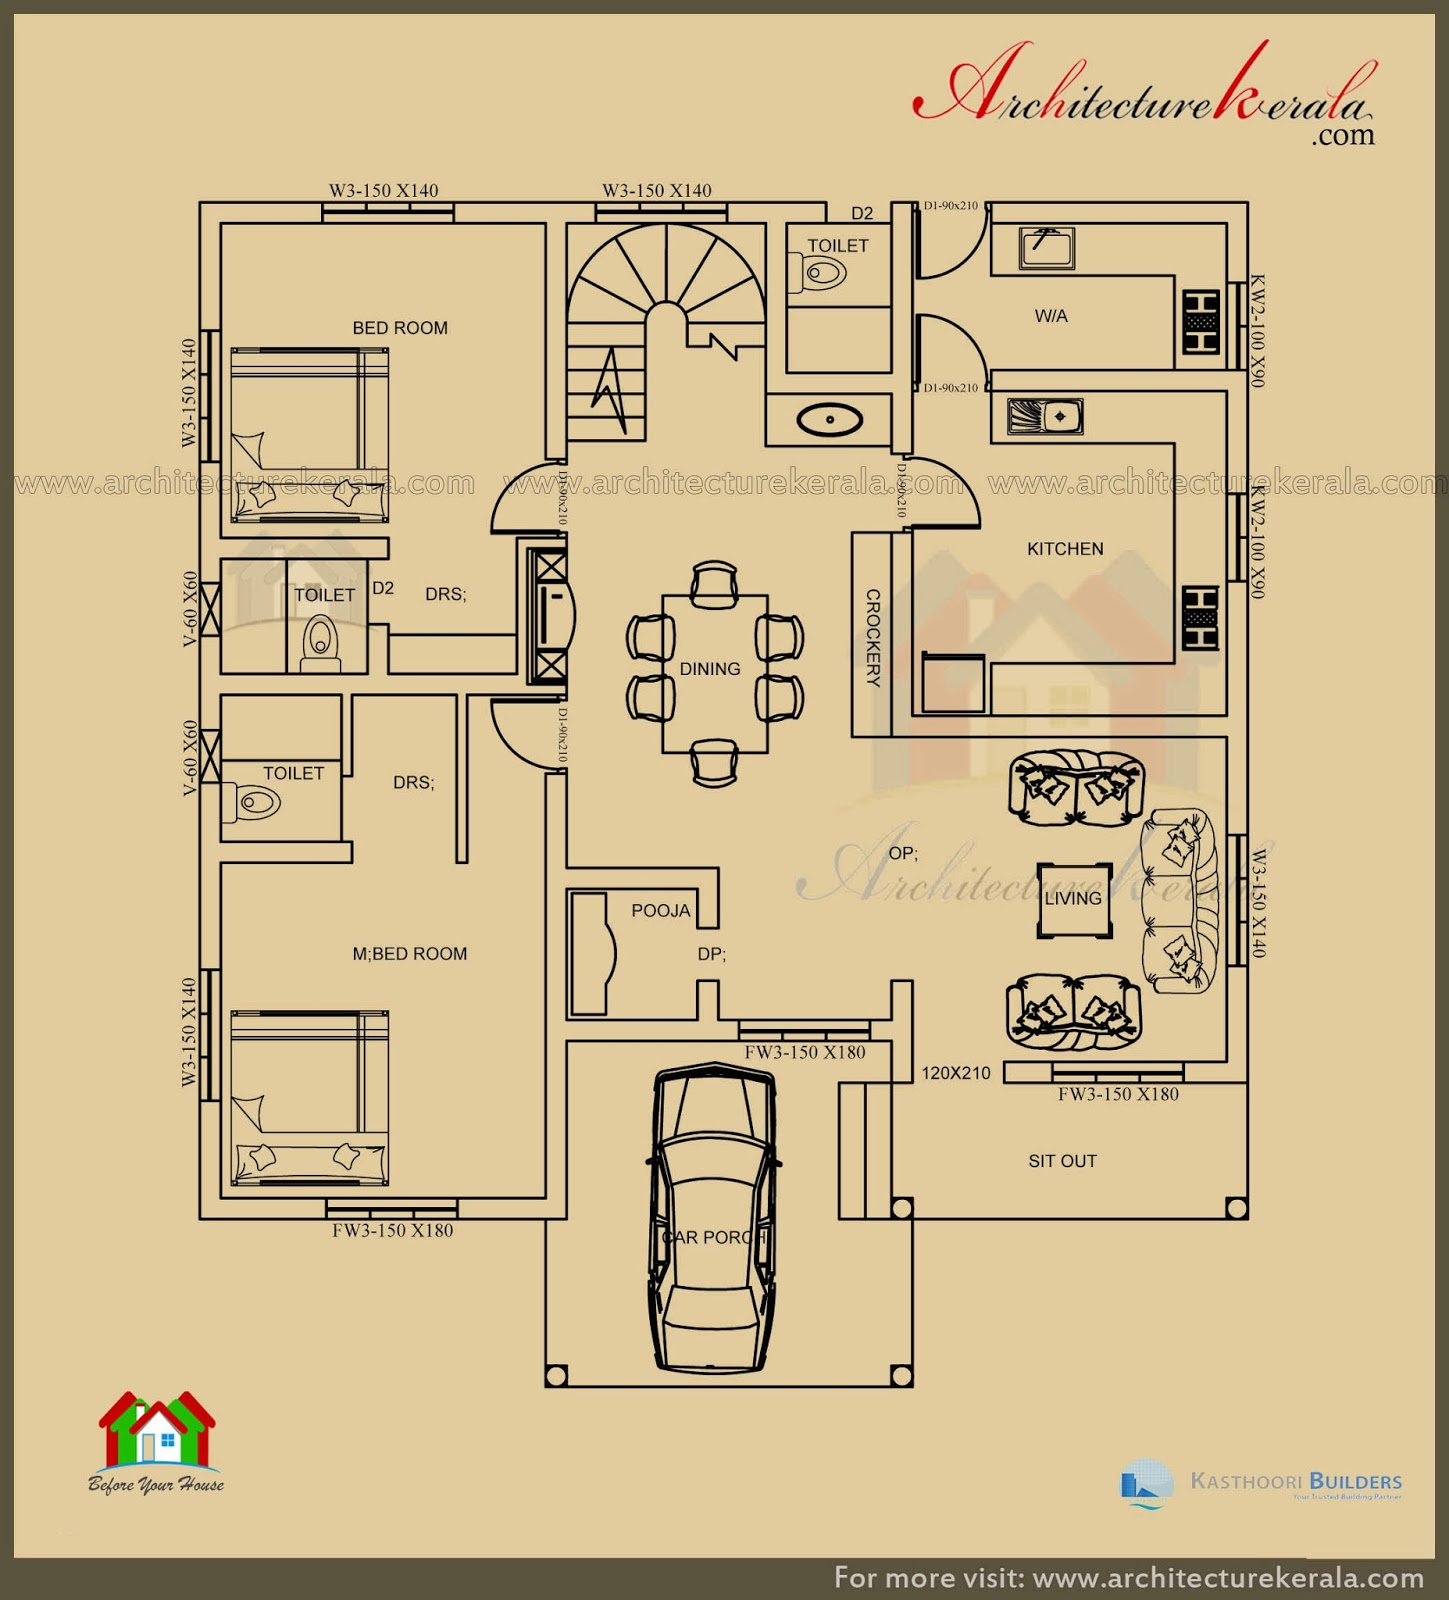 2500 sq ft 3 bedroom house plan with pooja room for 3 bedroom house plans indian style